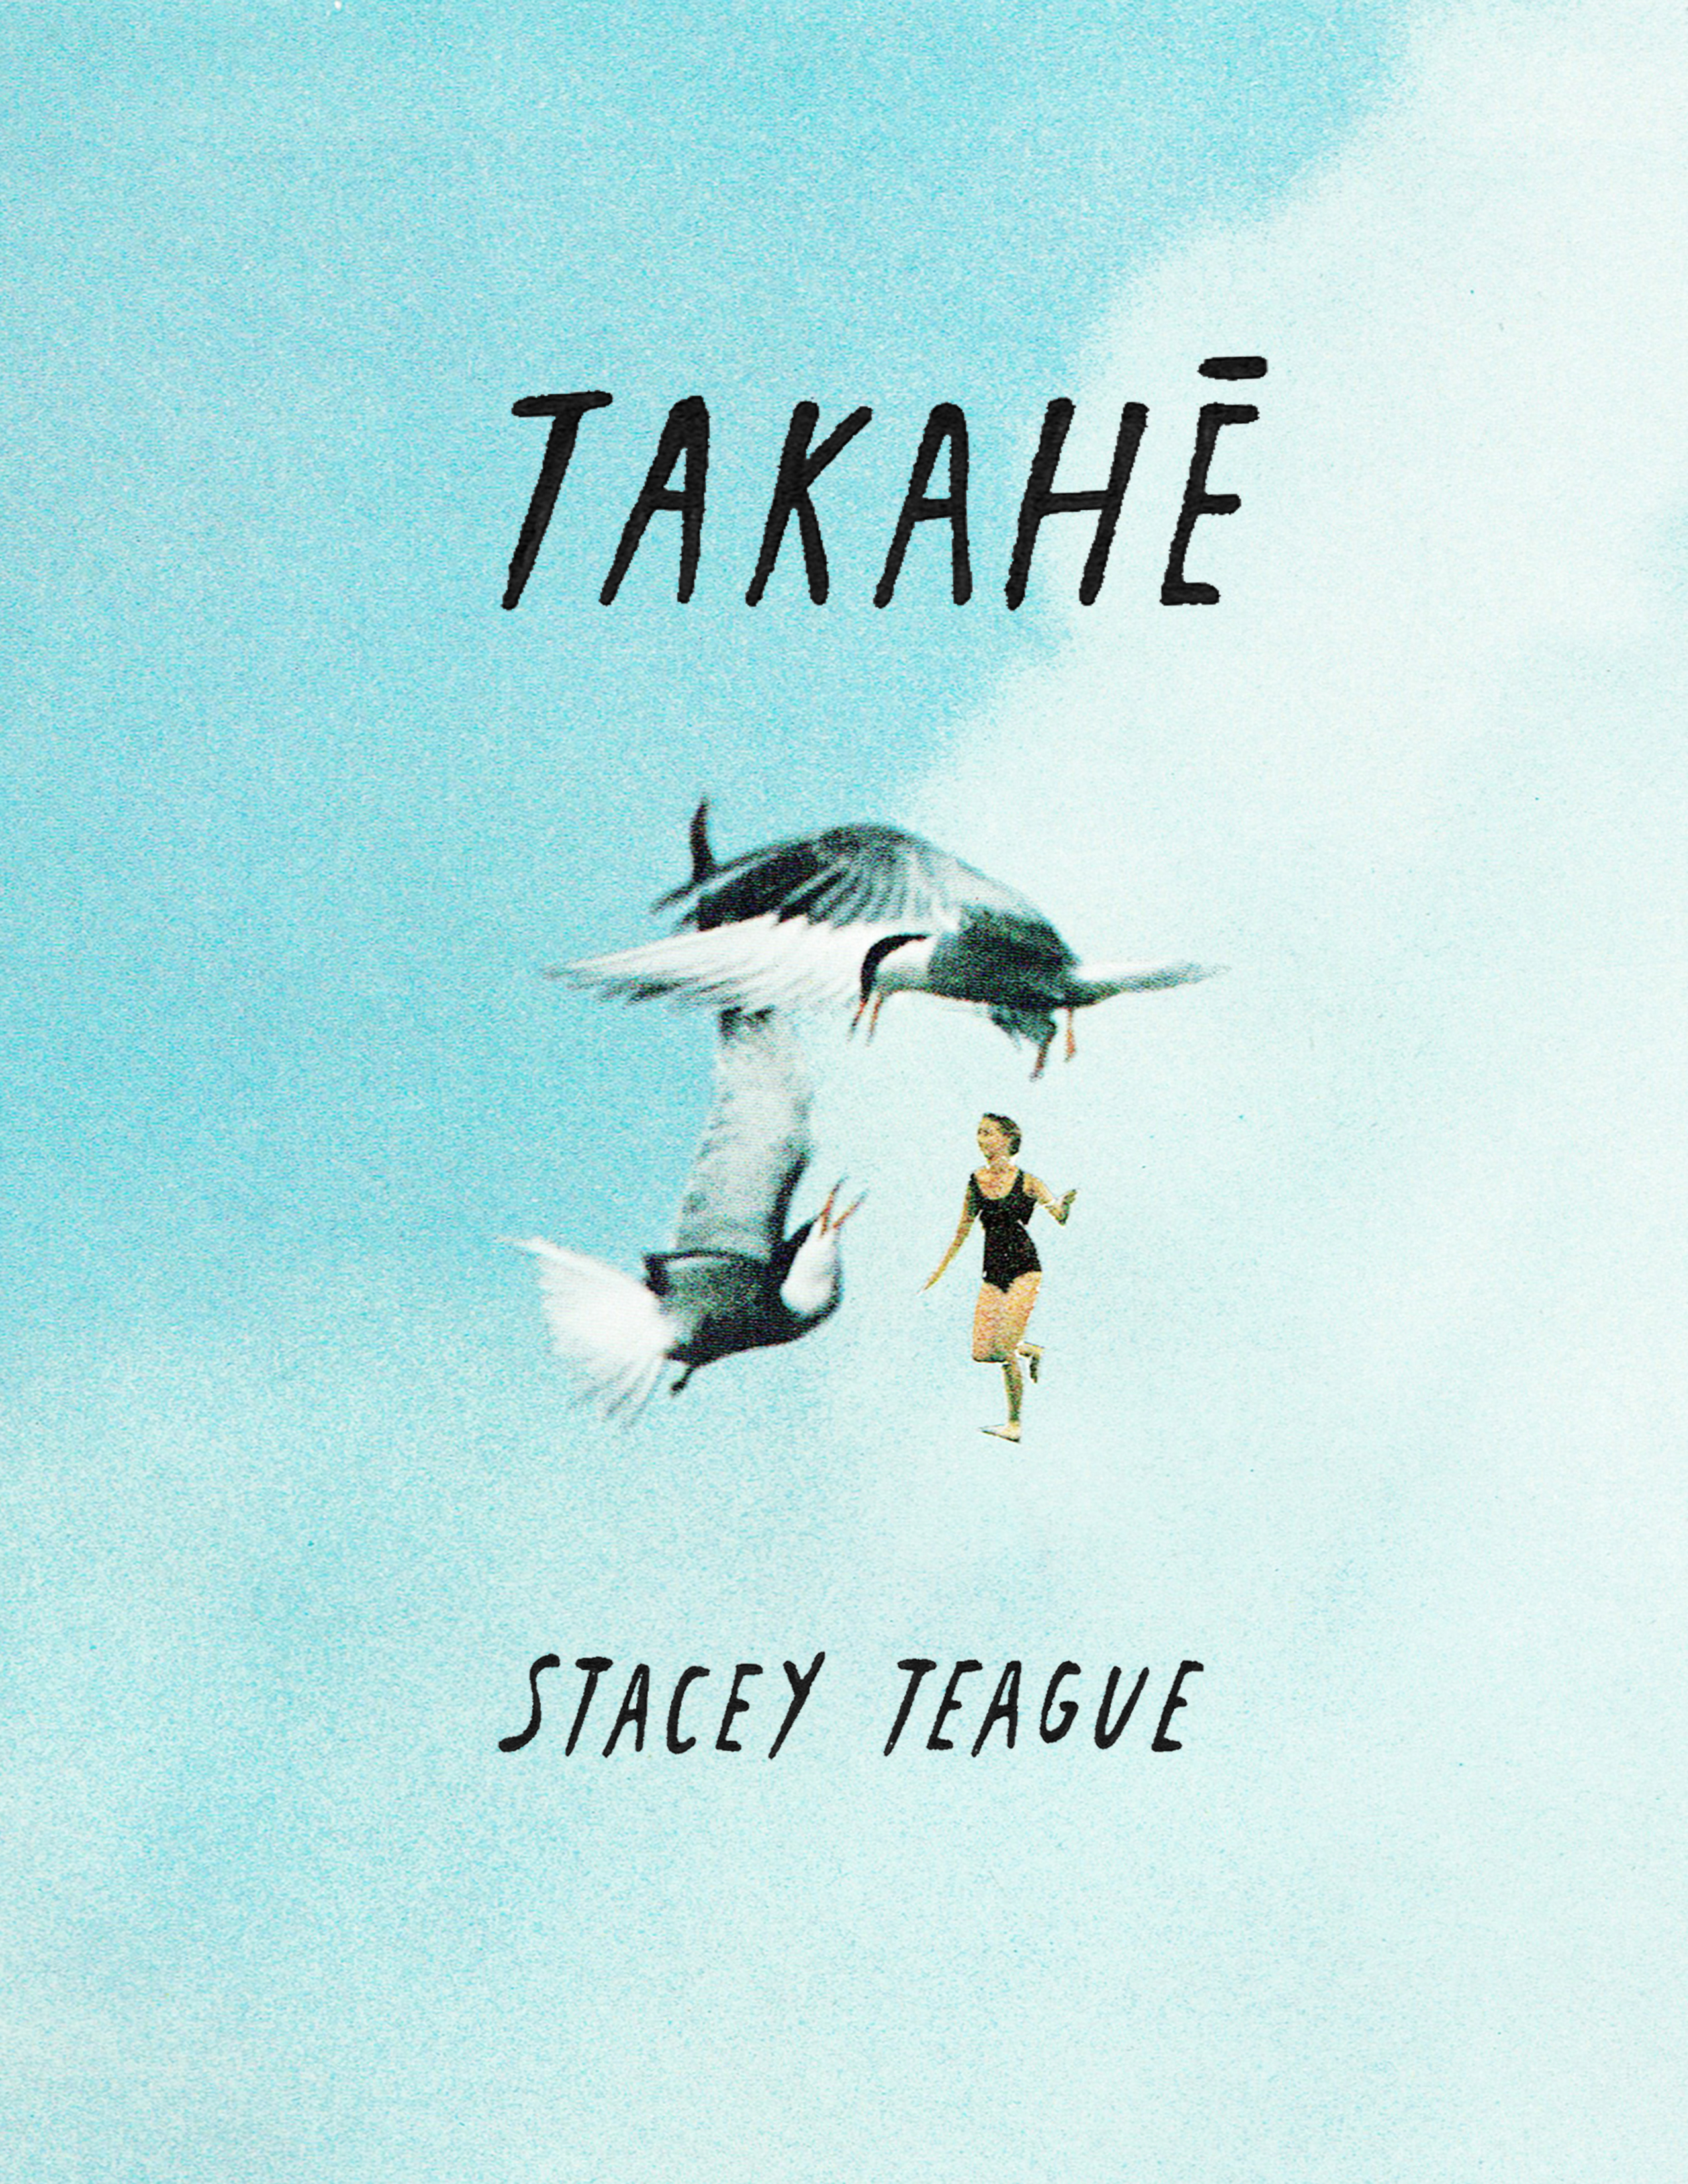 takahe front cover